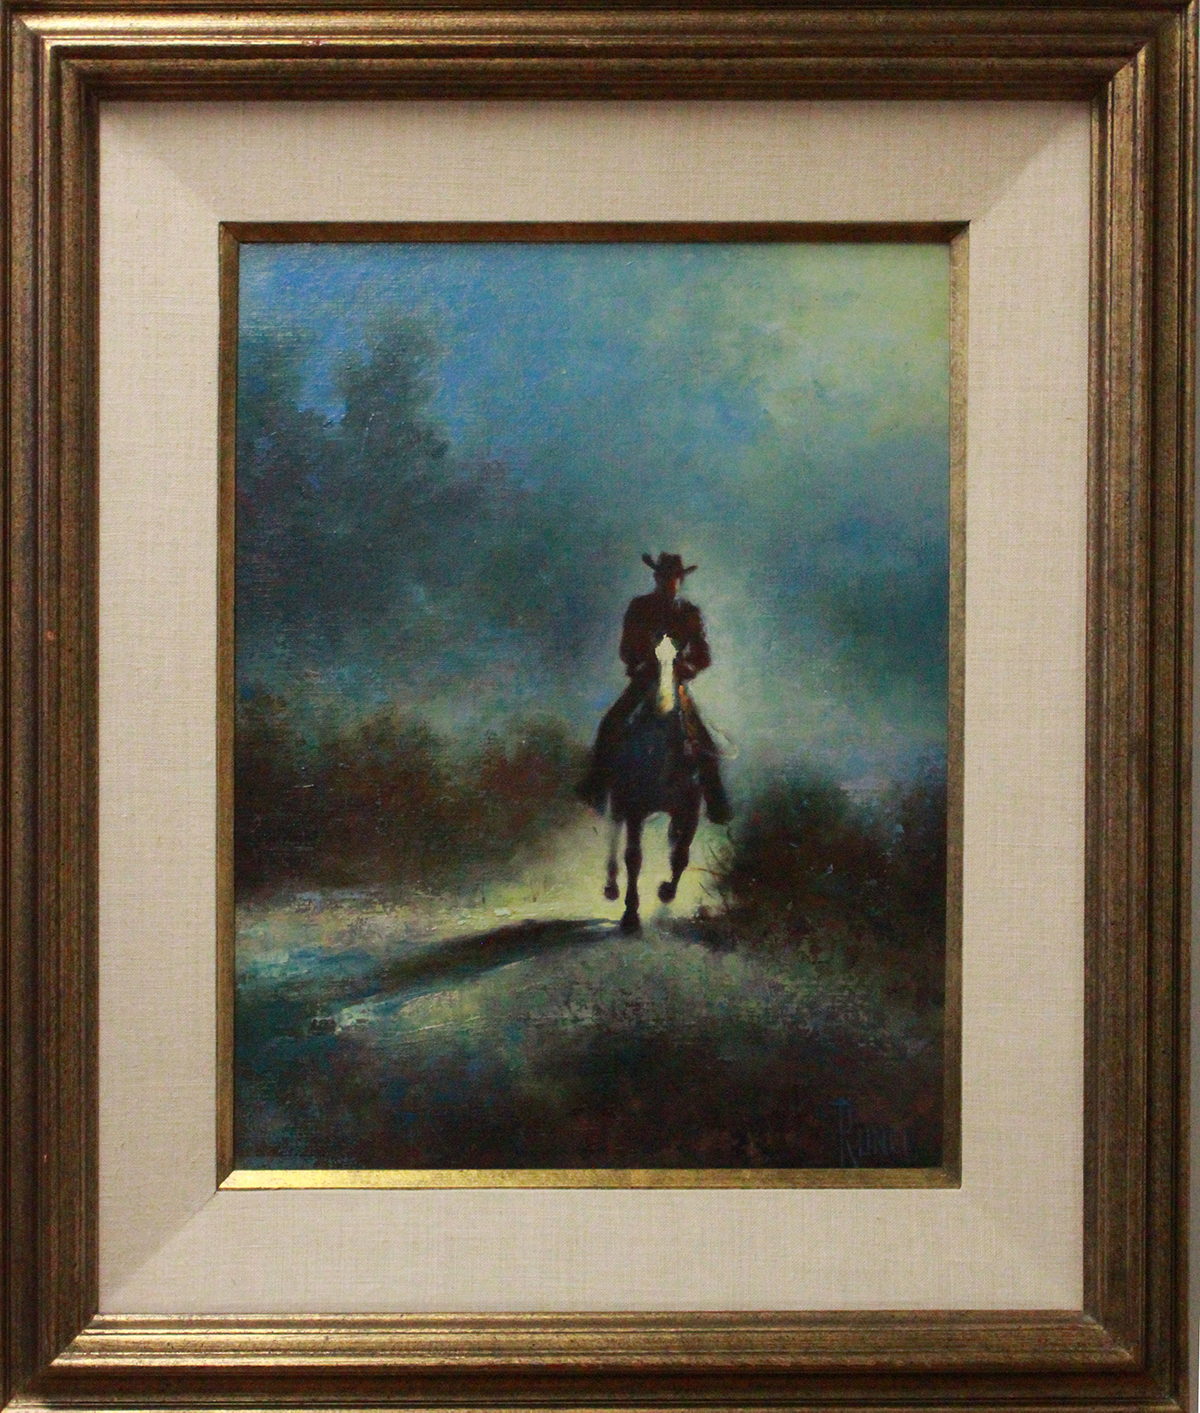 painting of a silhouetted figure on horse back